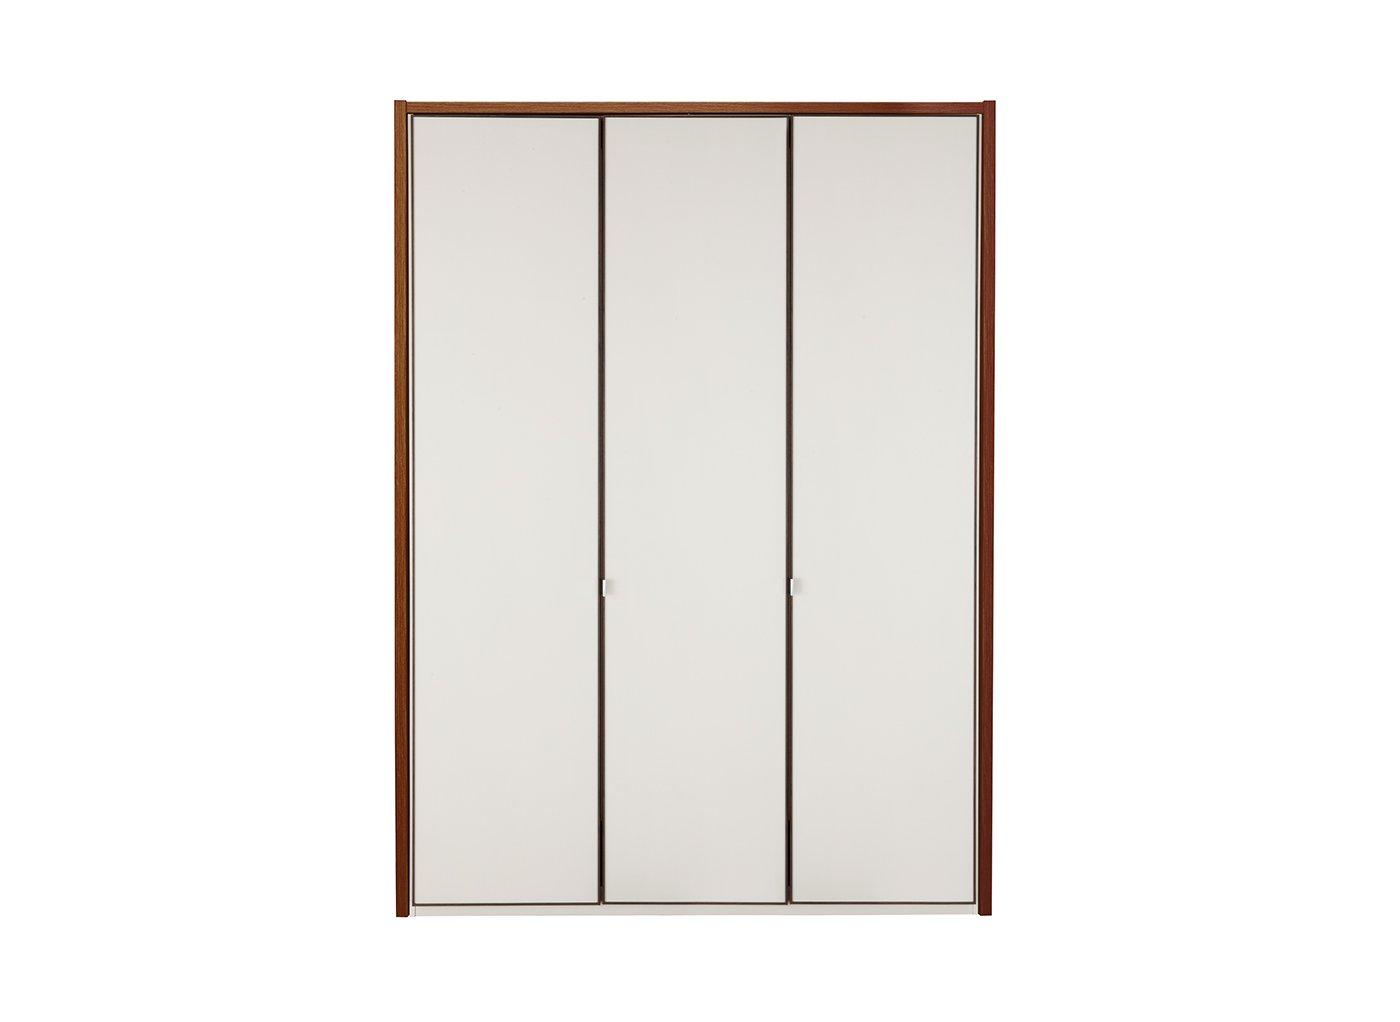 Cali 3 Door Wardrobe Champagne & Wood (£749)